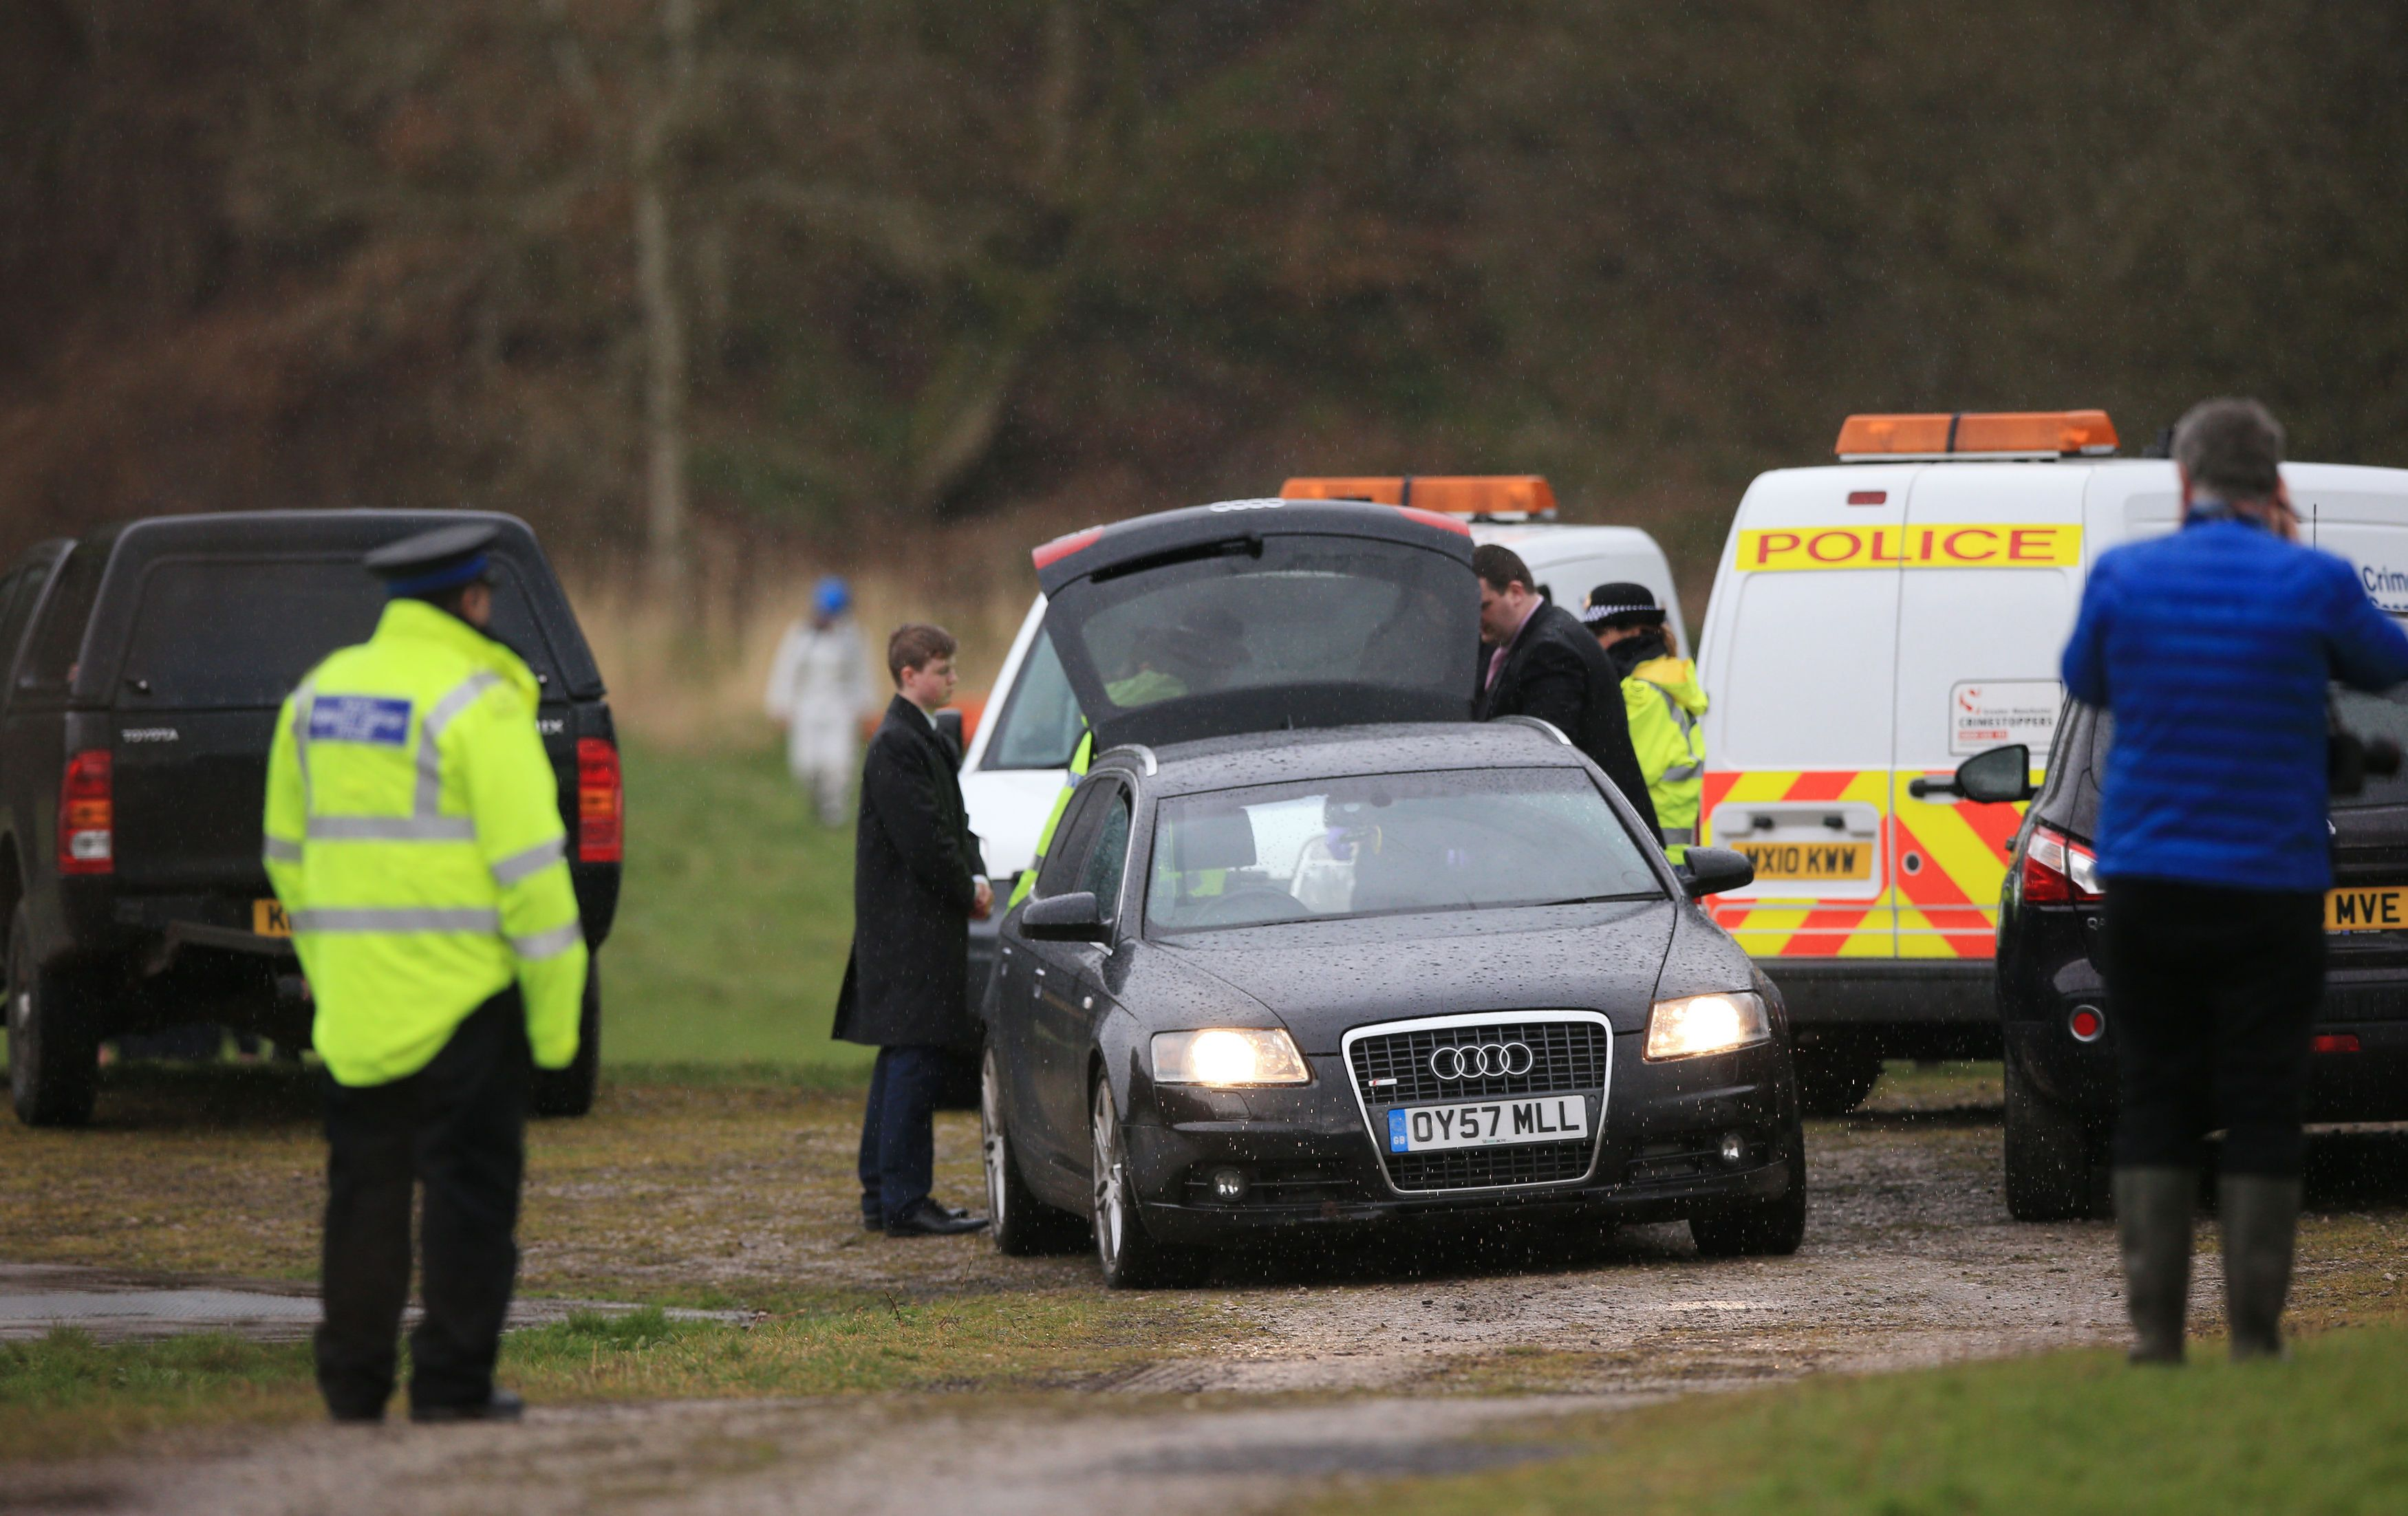 Police at the Heywood scene where the body of a newborn baby was found last